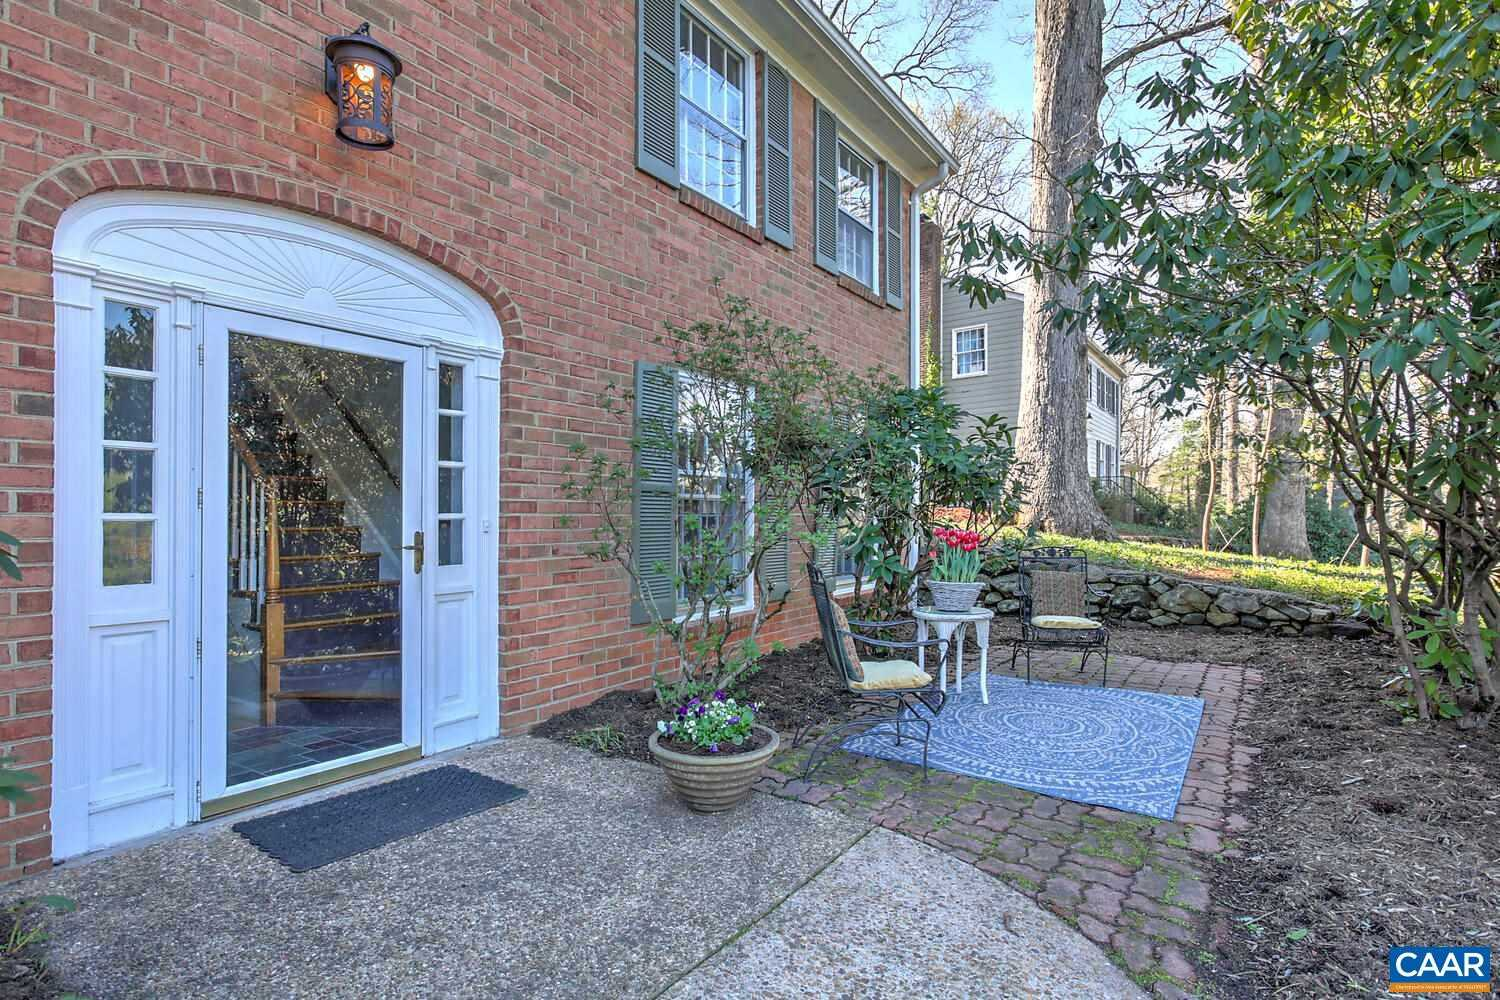 $559,000 - 4Br/2Ba -  for Sale in Greenbrier Heights (charlottesville), Charlottesville